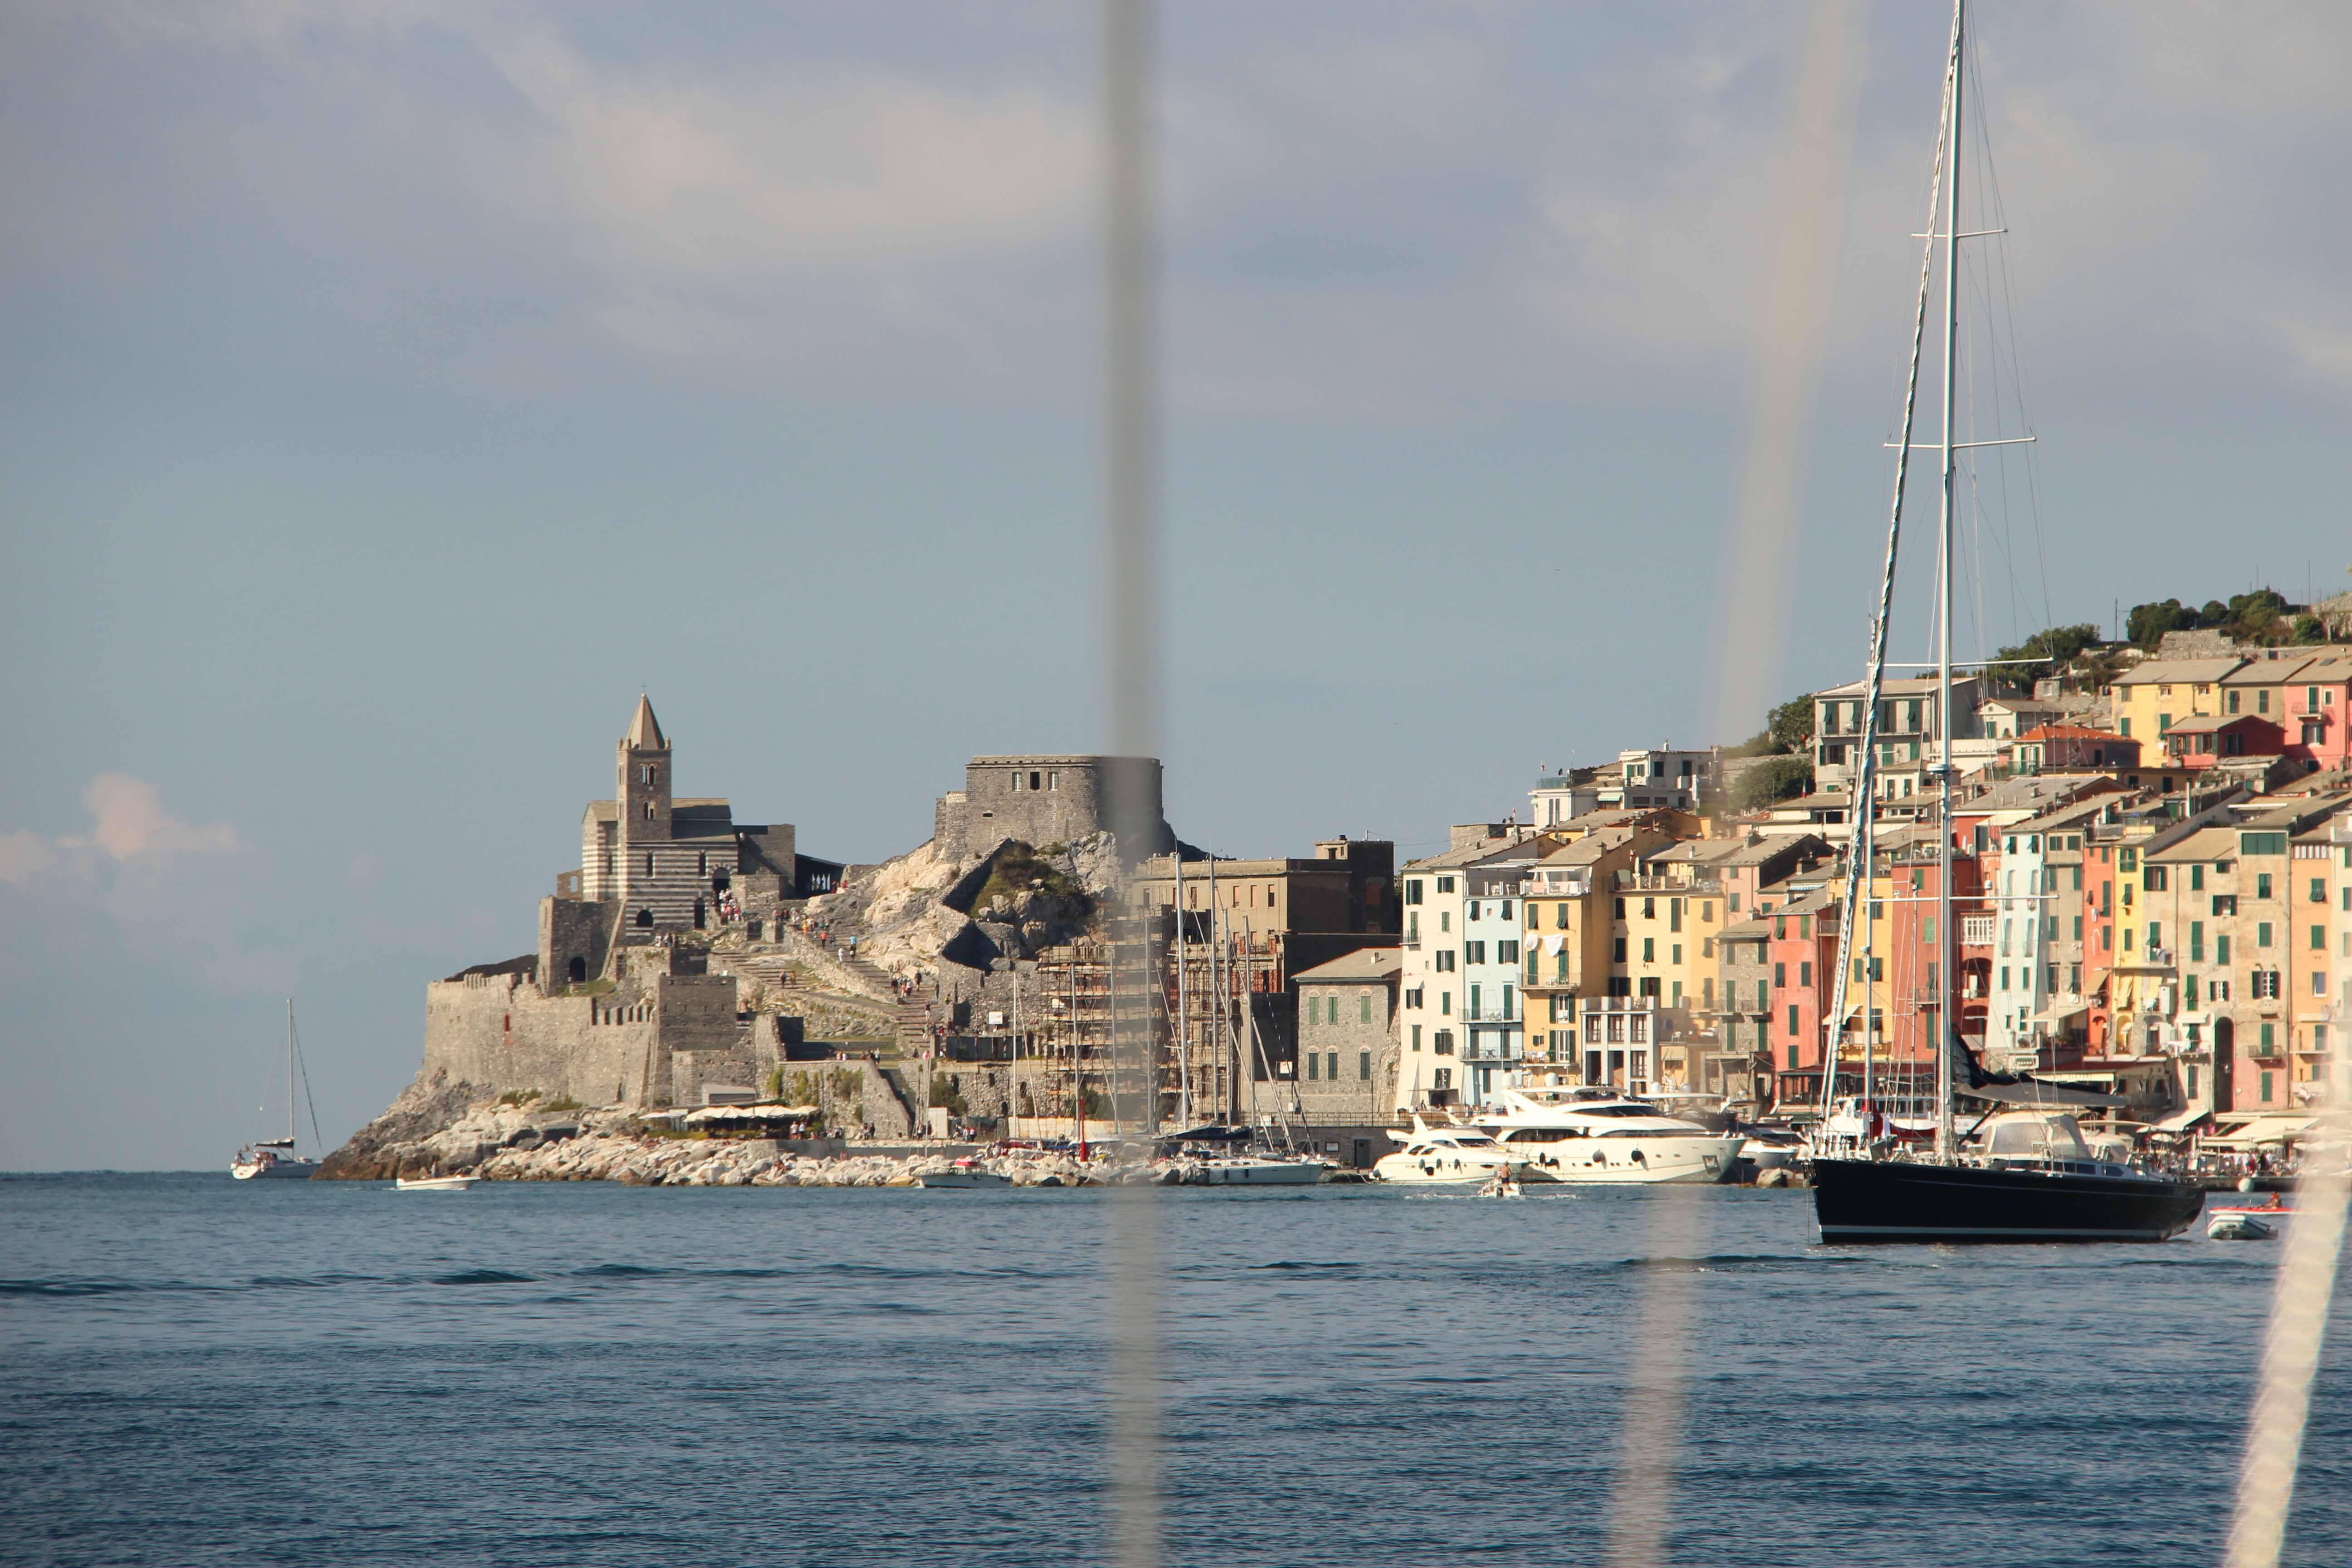 Sailing in the Gulf of Poets on the Italian Riviera